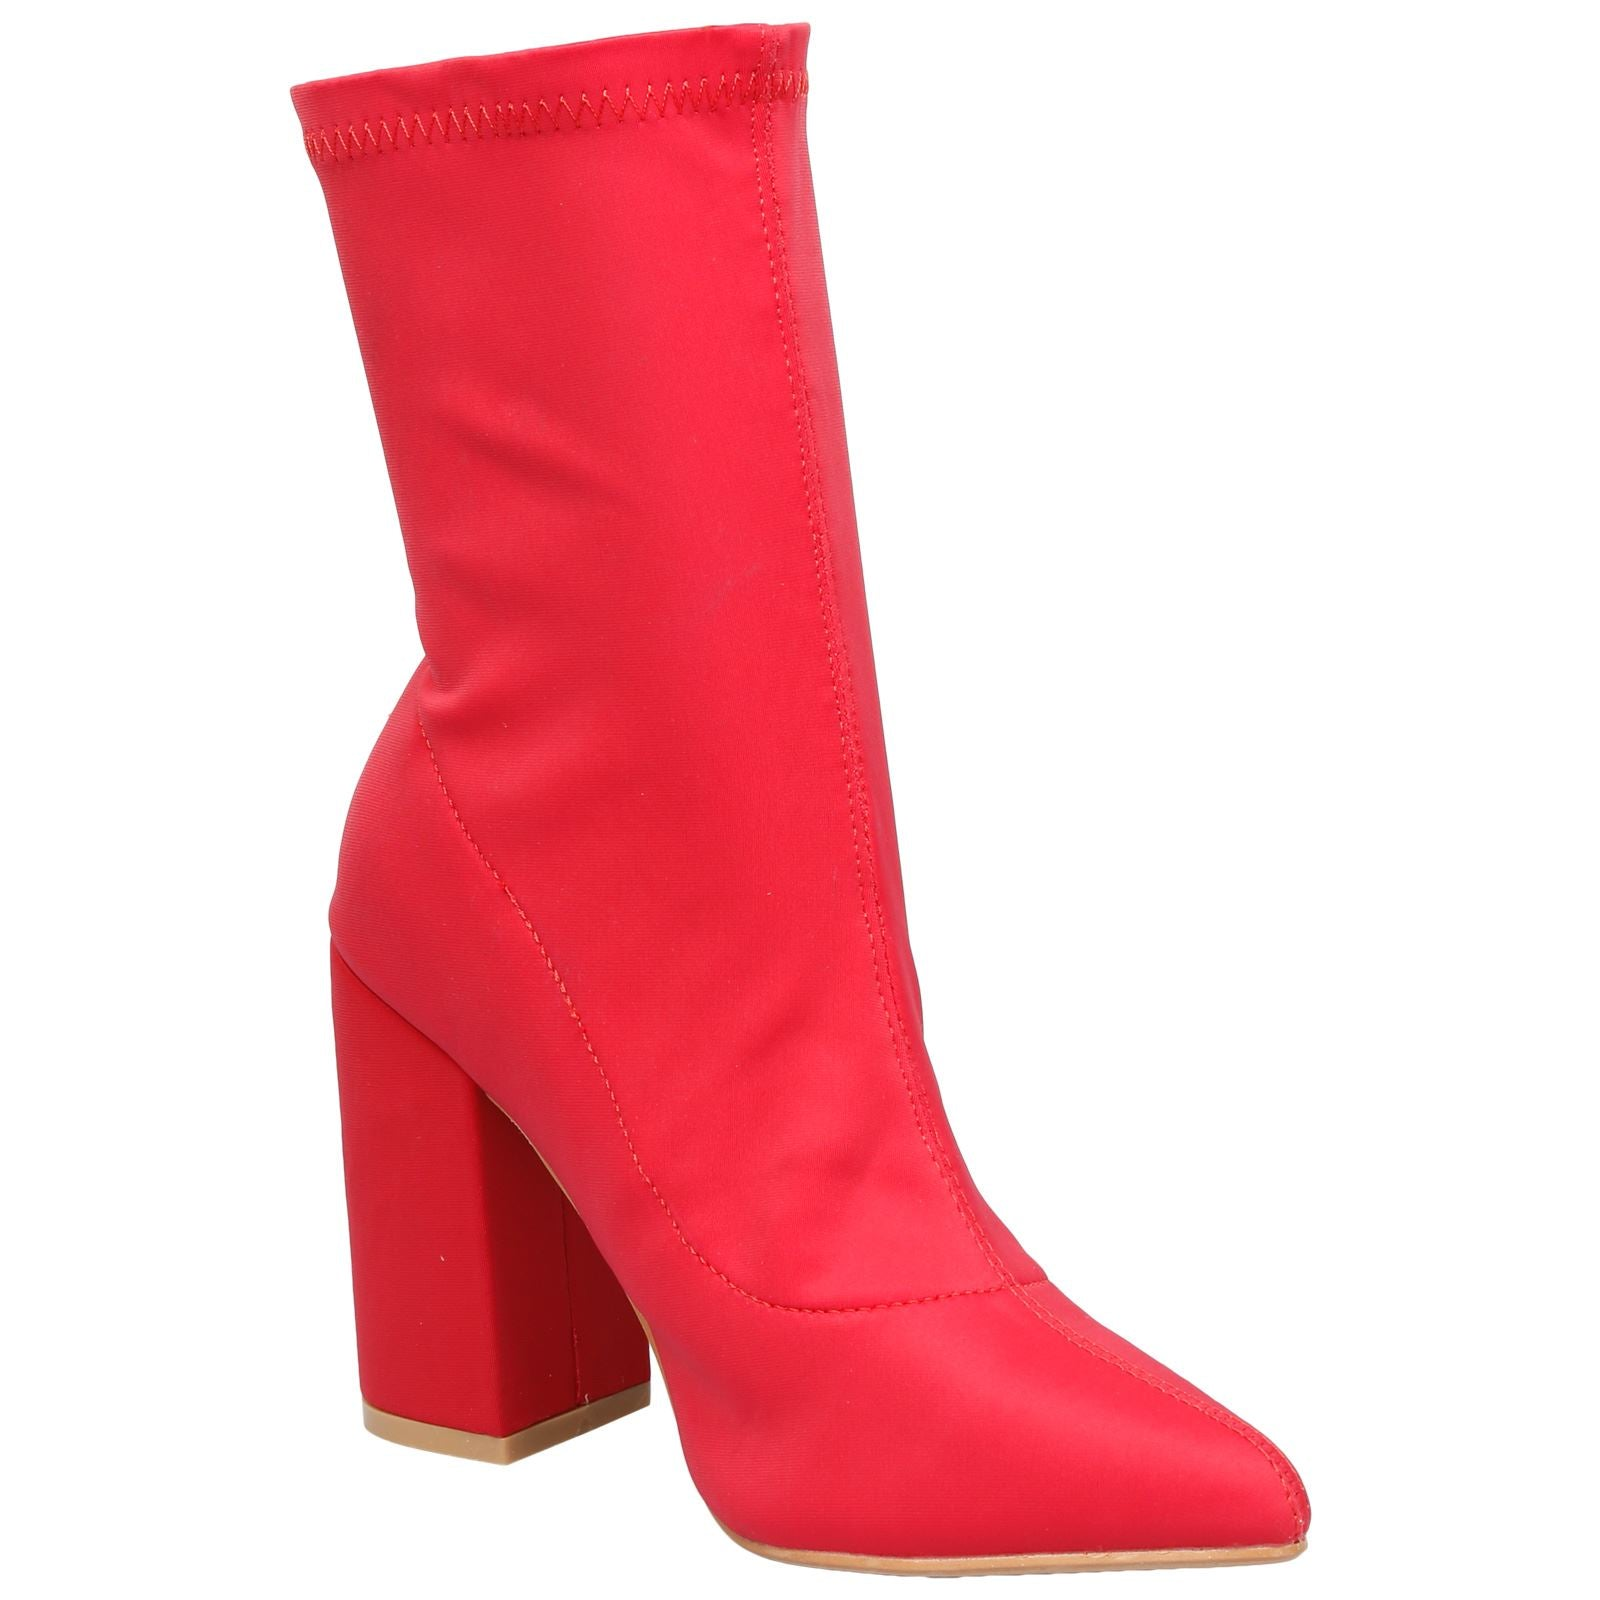 Hayden Pull On Block Heel Ankle Boots in Red